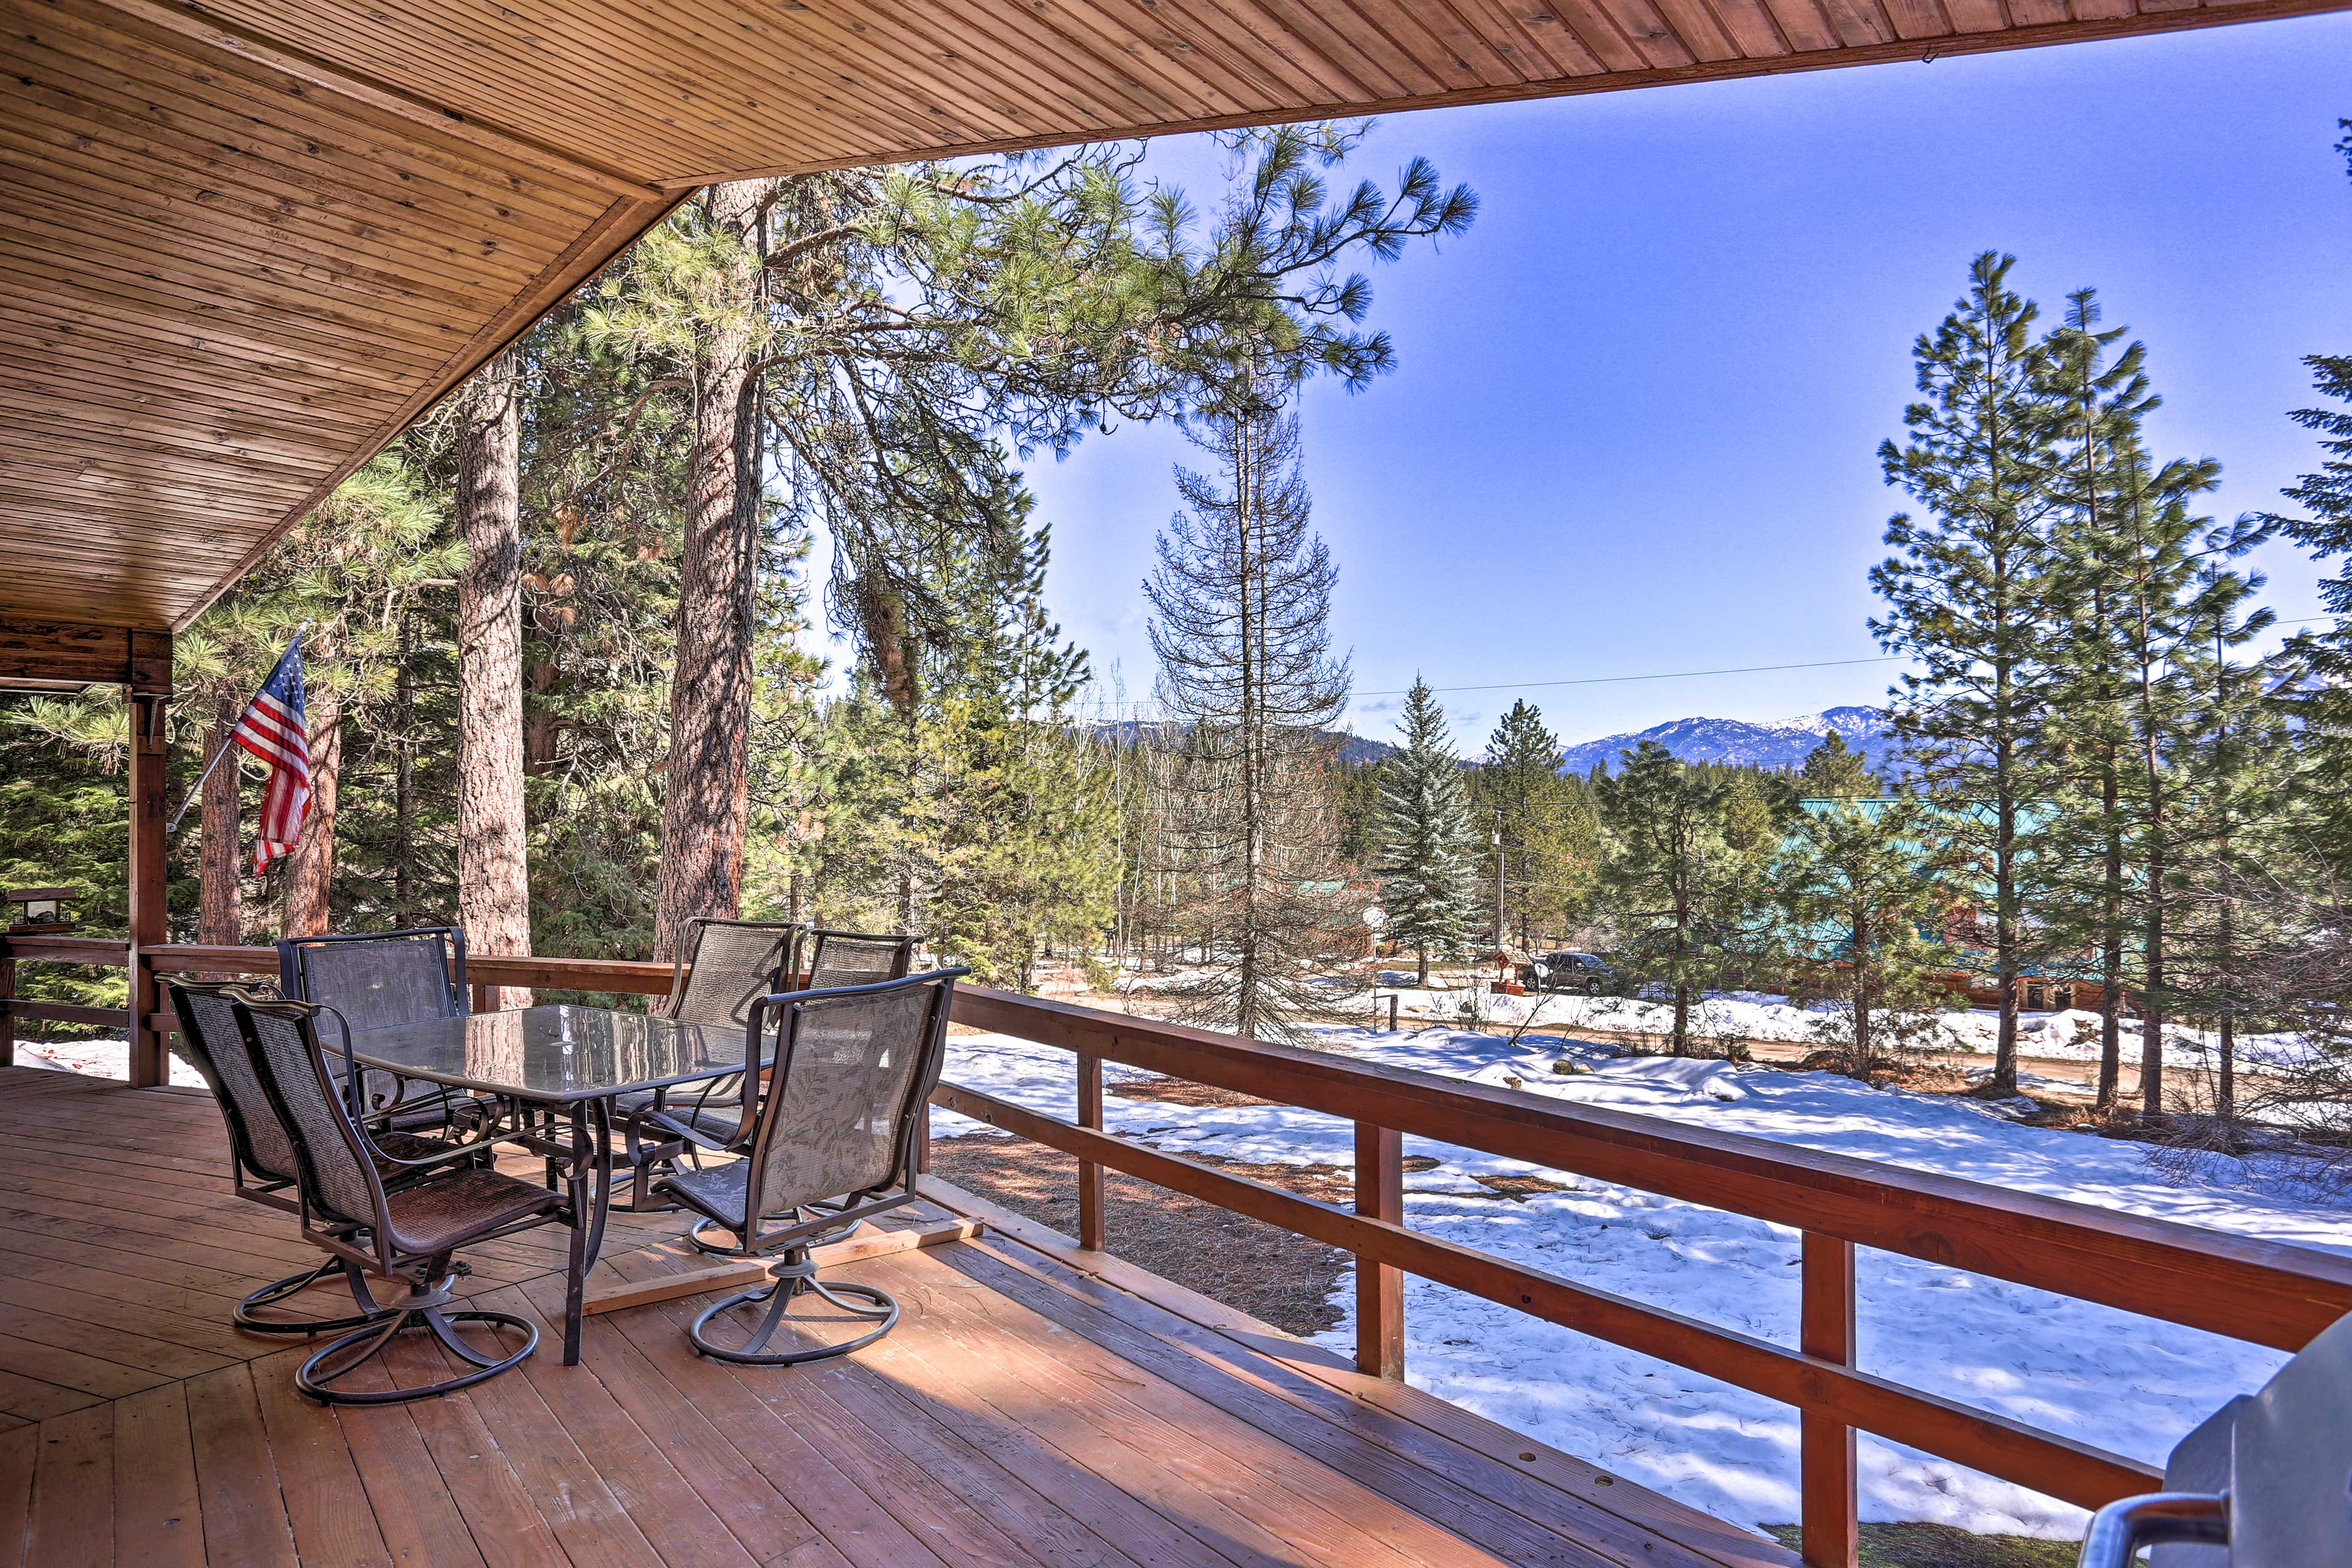 Take dinner on this vacation rental's covered deck with a view of the mountains!